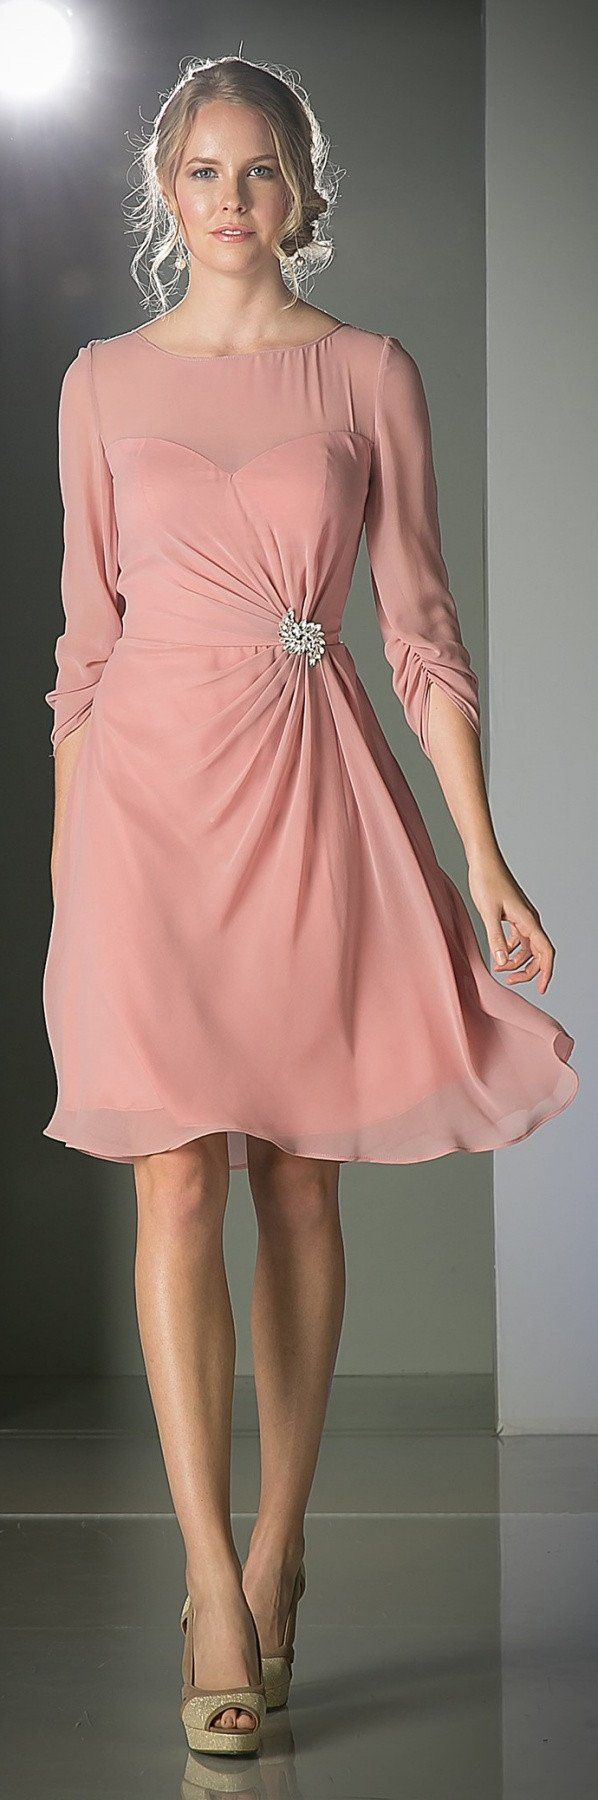 Scoop Neckline 3/4 Sleeves Cocktail Dress Rose Knee Length ...